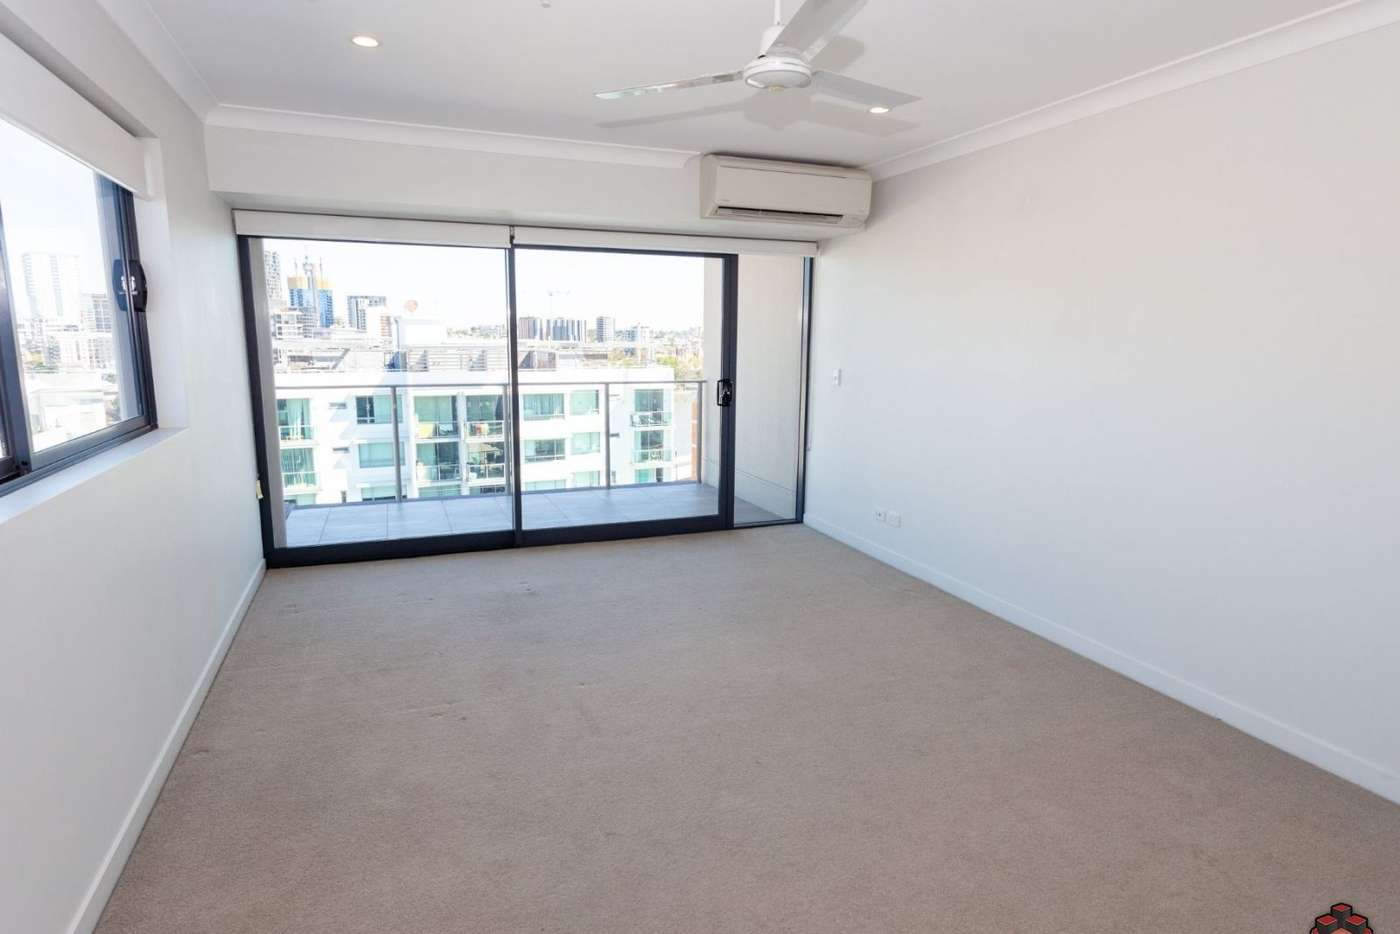 Seventh view of Homely apartment listing, ID:3911812/111 Quay Street, Brisbane City QLD 4000